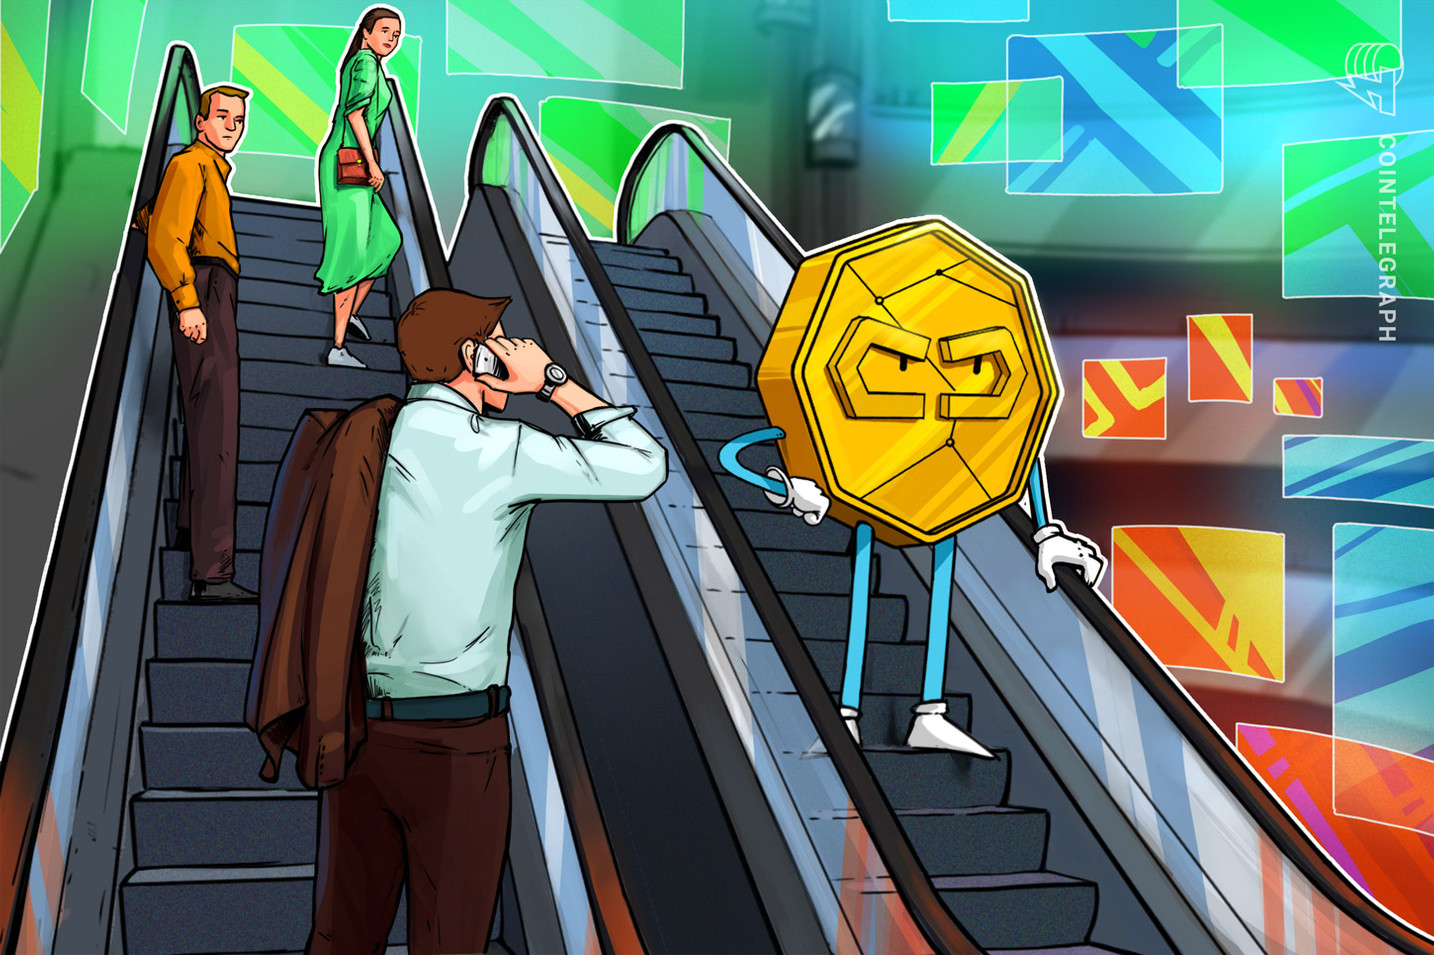 Crypto Market Meltdown Continues as Bitcoin Price Drops Below $5,000